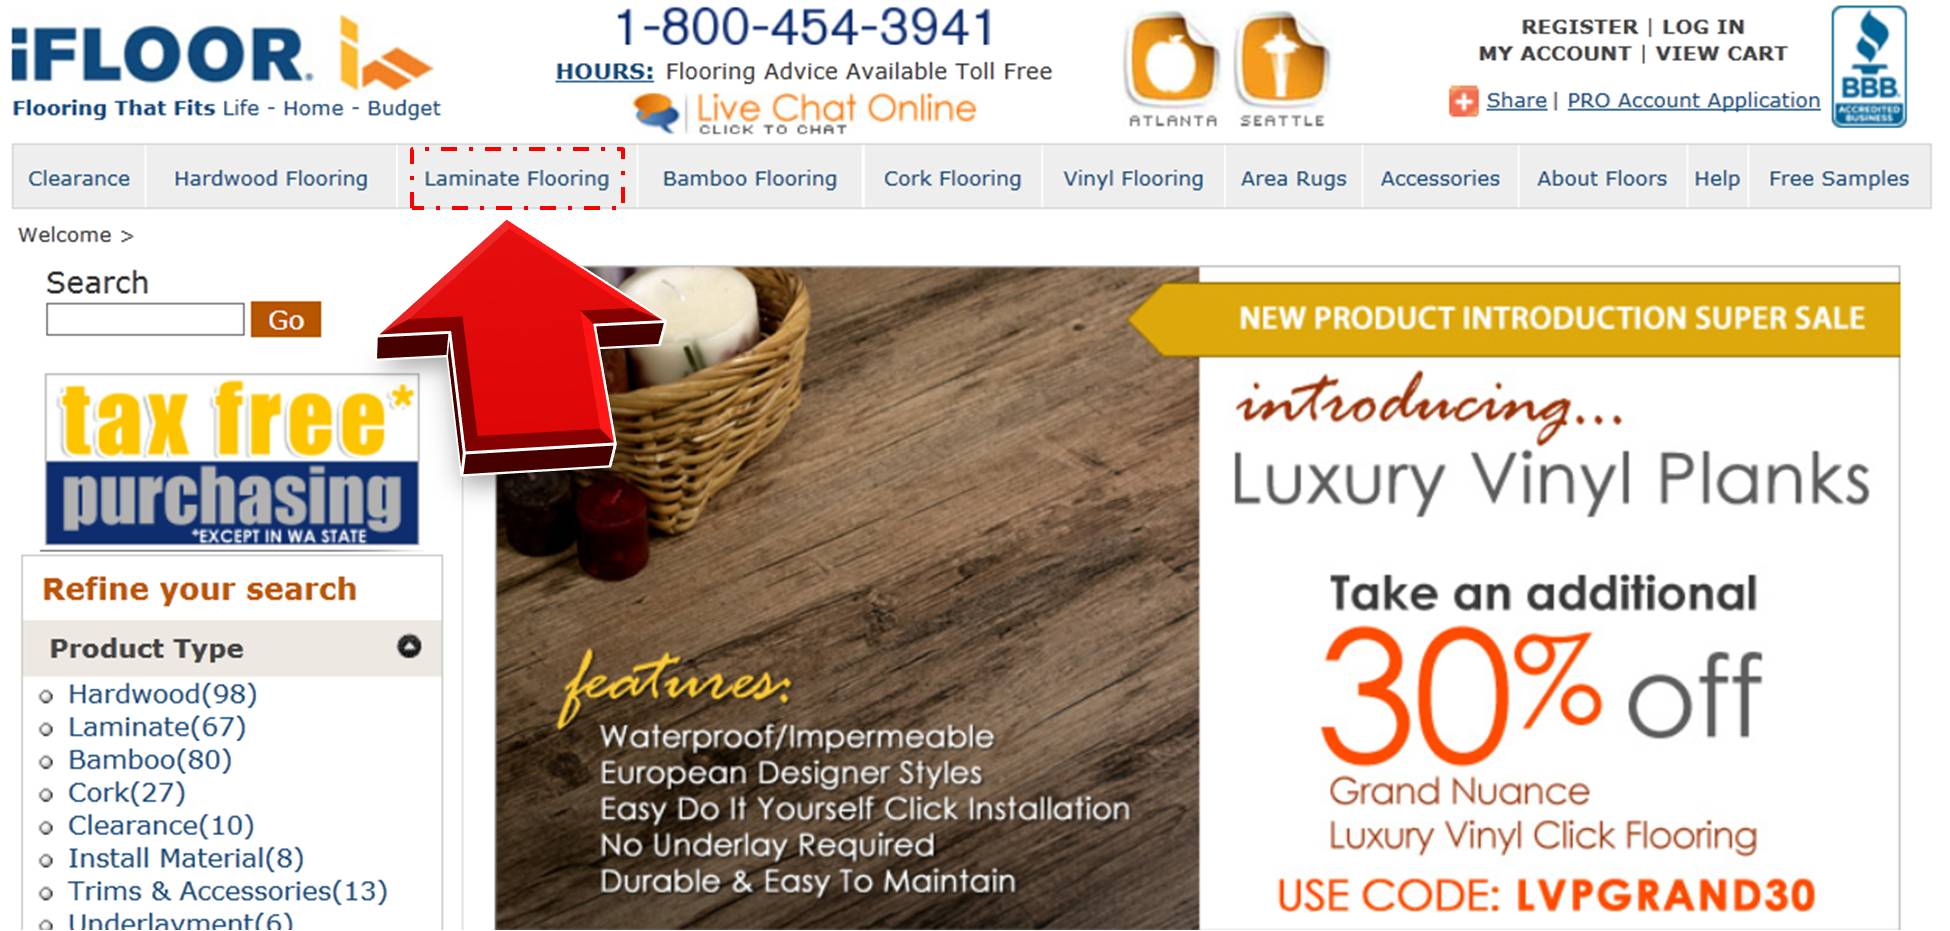 Find out the attractive Best Laminate coupons and promo codes at GoodShop for vinyl and laminate flooring. Upgrade your home look with creative luxury vinyl flooring collections. Best Laminate brings you a classic combination of professional quality and innovative style flooring collections.